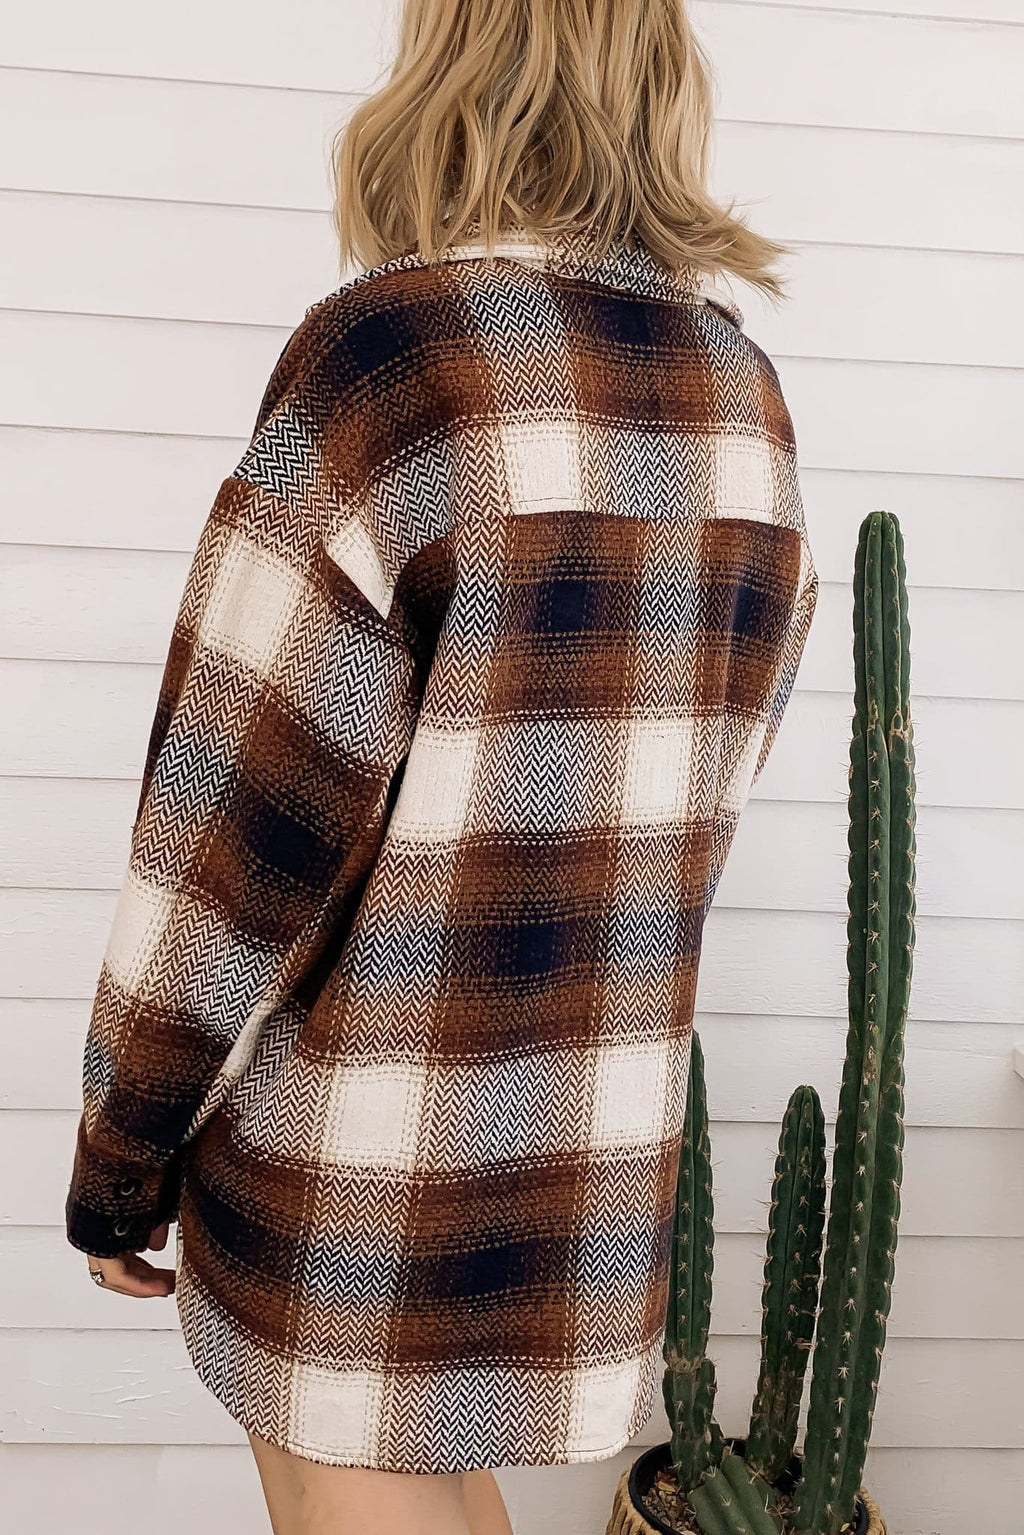 RESTOCK Woodlands Flannel Shacket